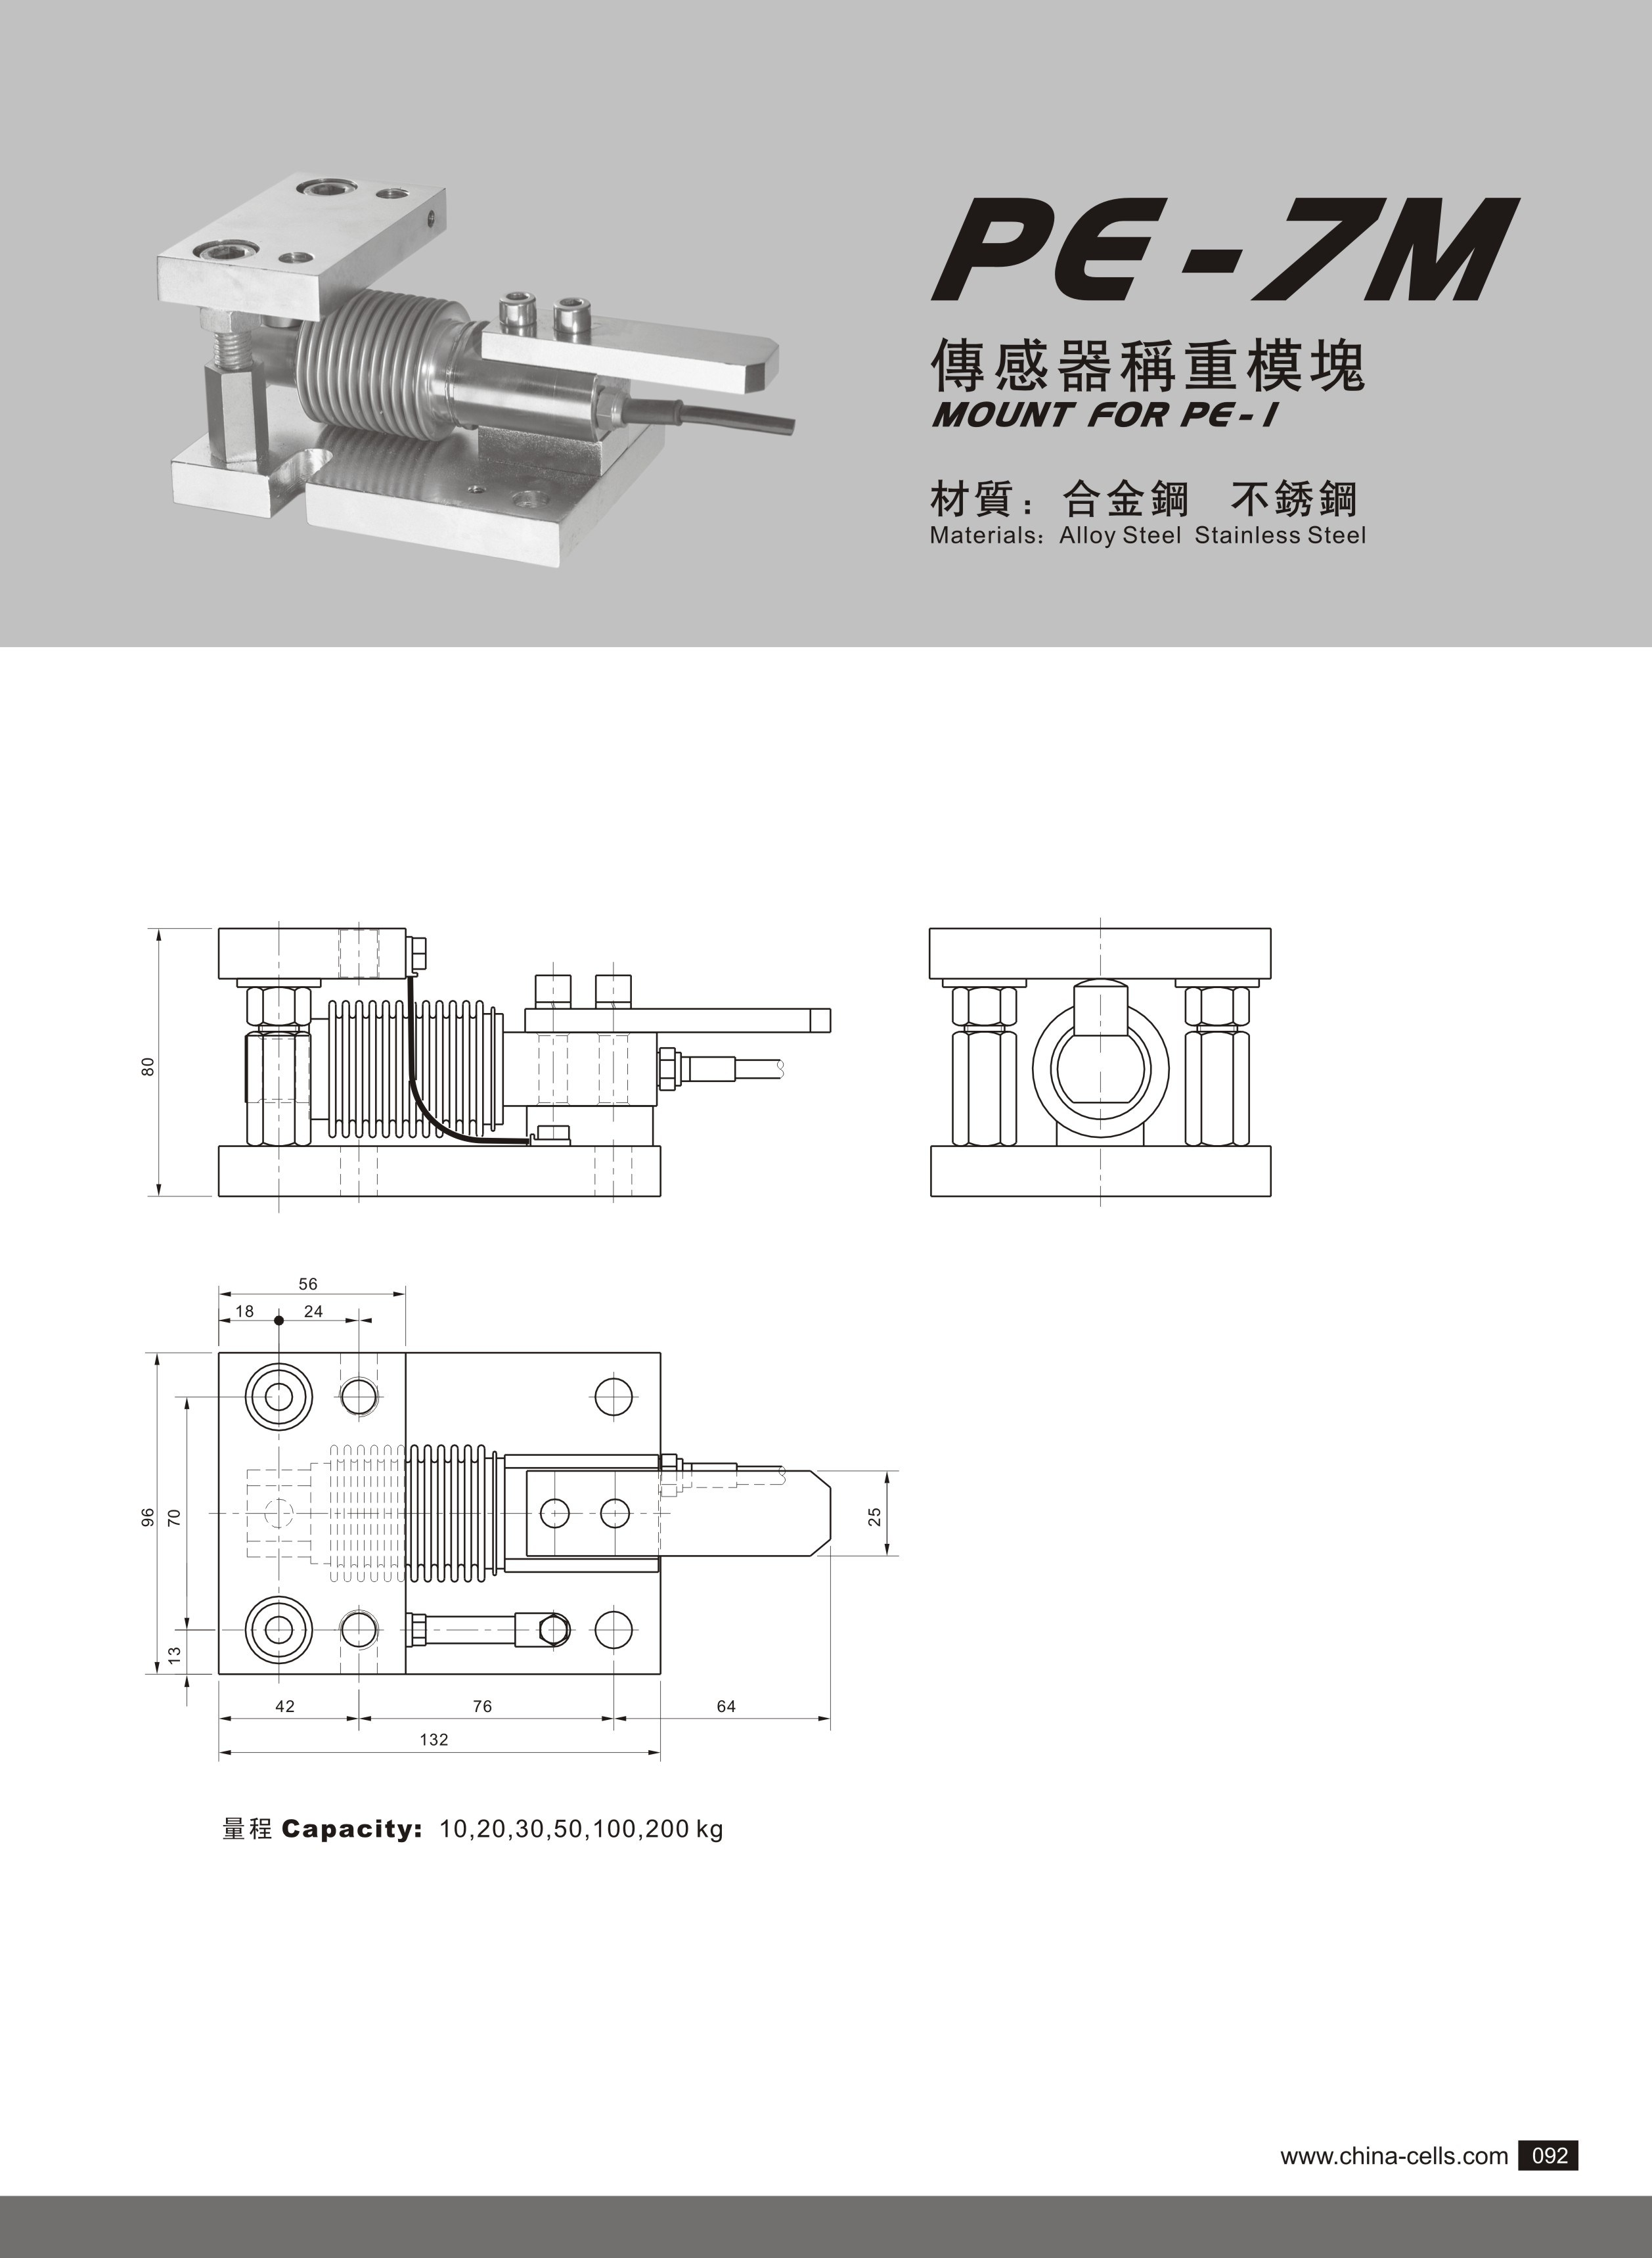 Load Cell Mount for Weighing Scale (PE-7M)